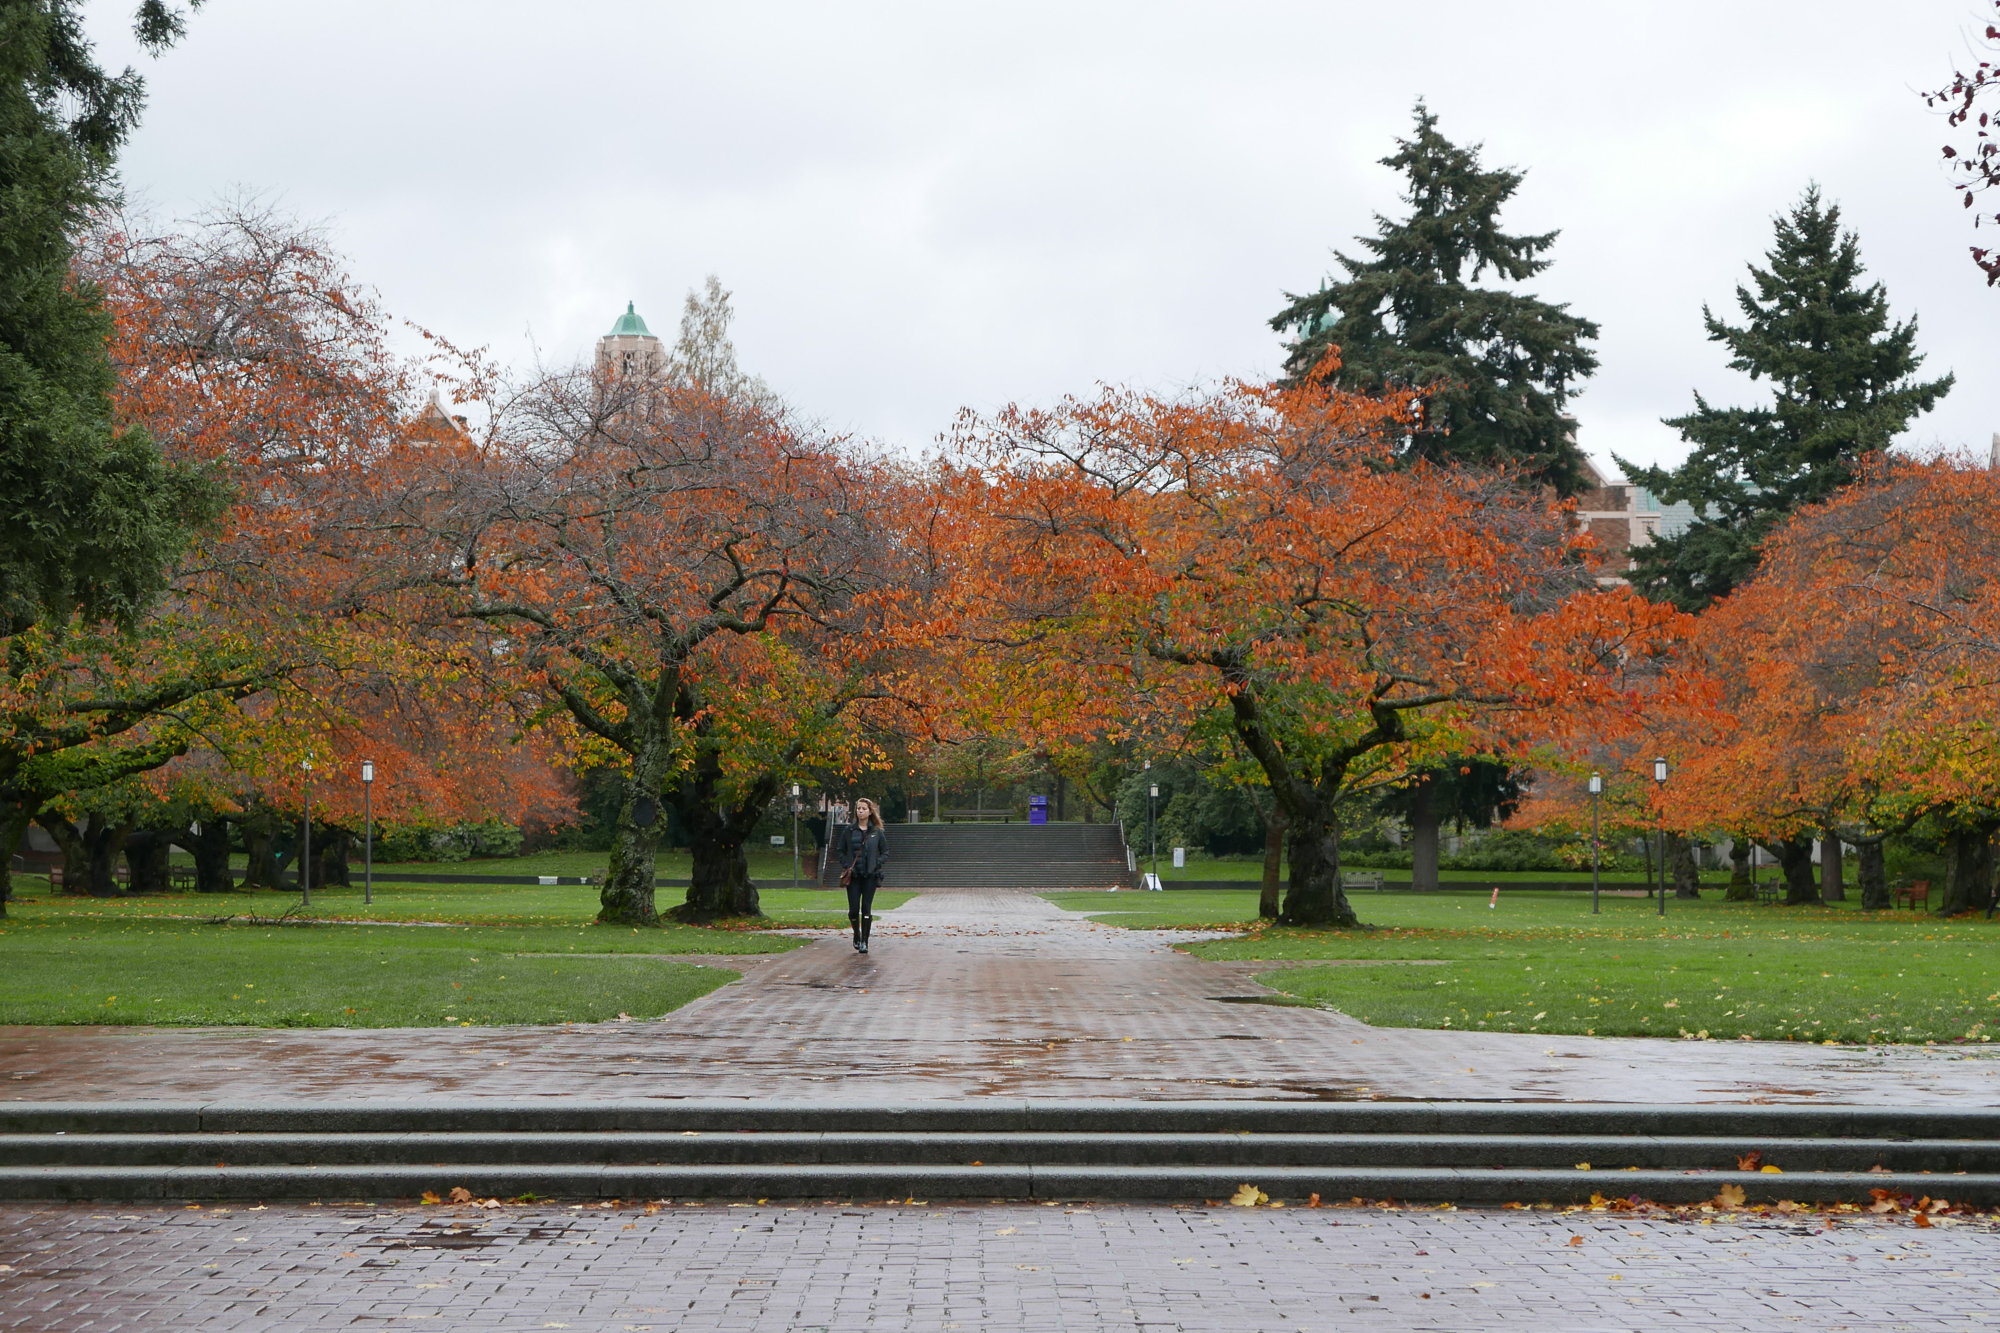 Campus tree and student